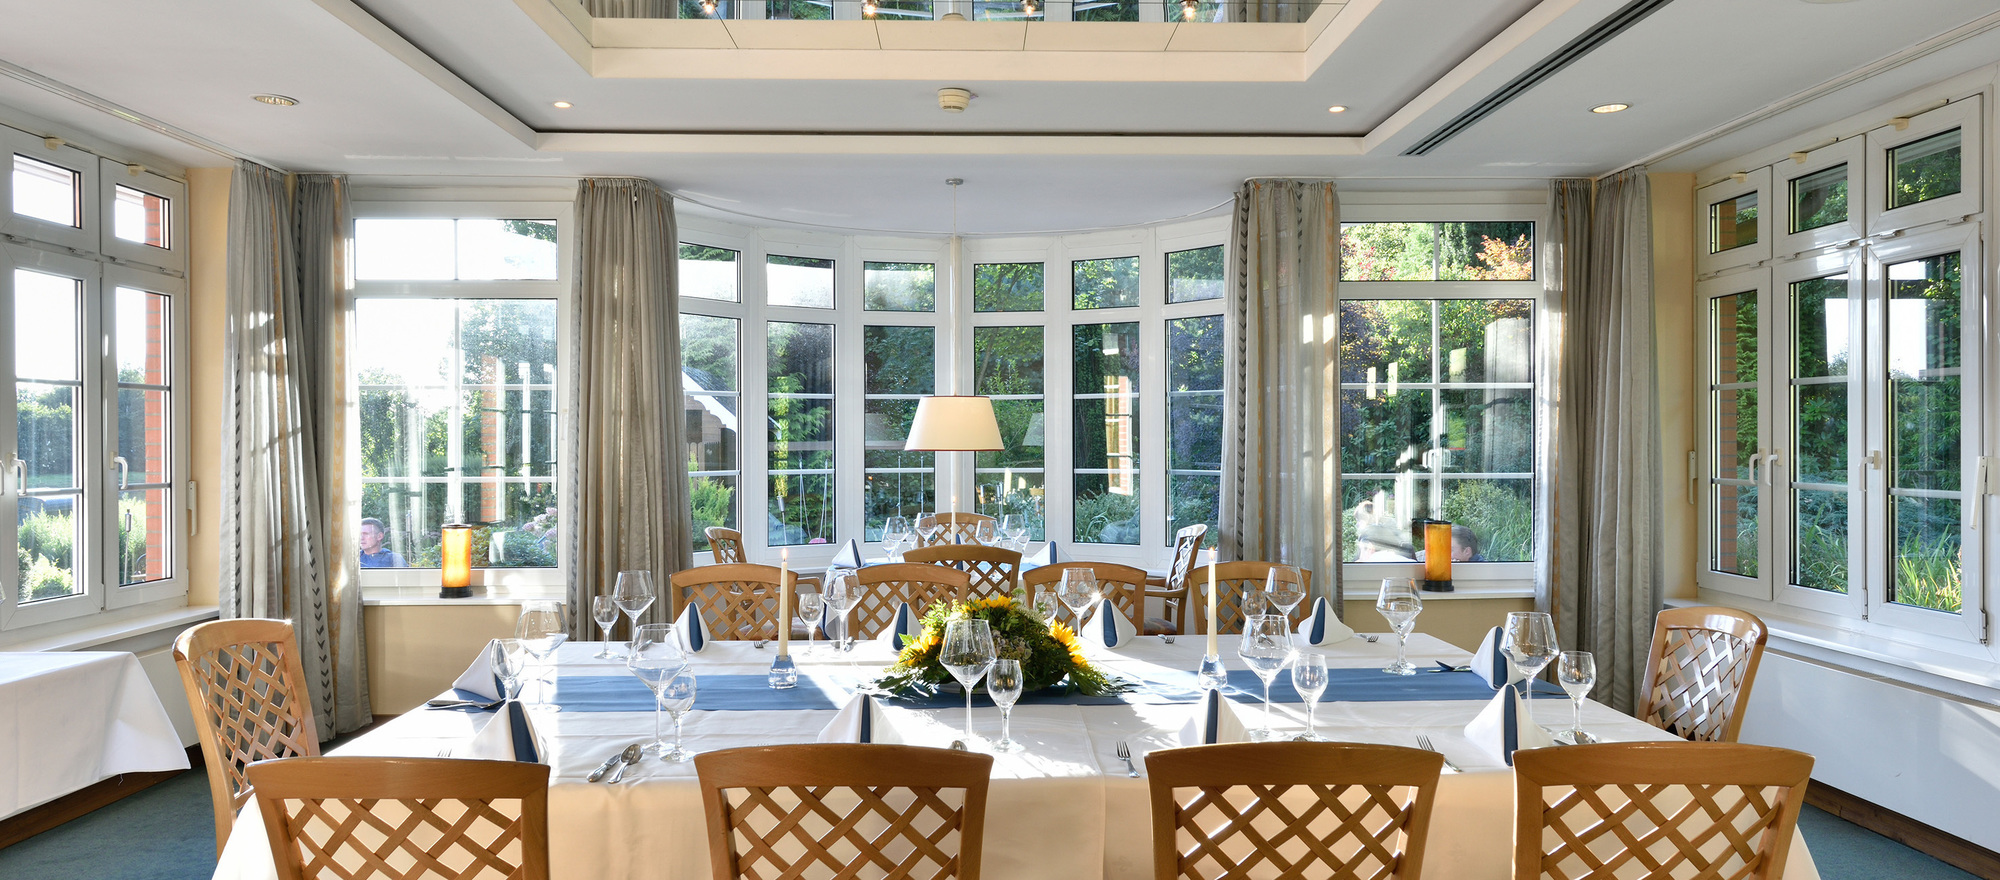 Winter garden restaurant overlooking the garden in Ringhotel Koehlers Forsthaus in Aurich, 4-star hotel at the North Sea coast